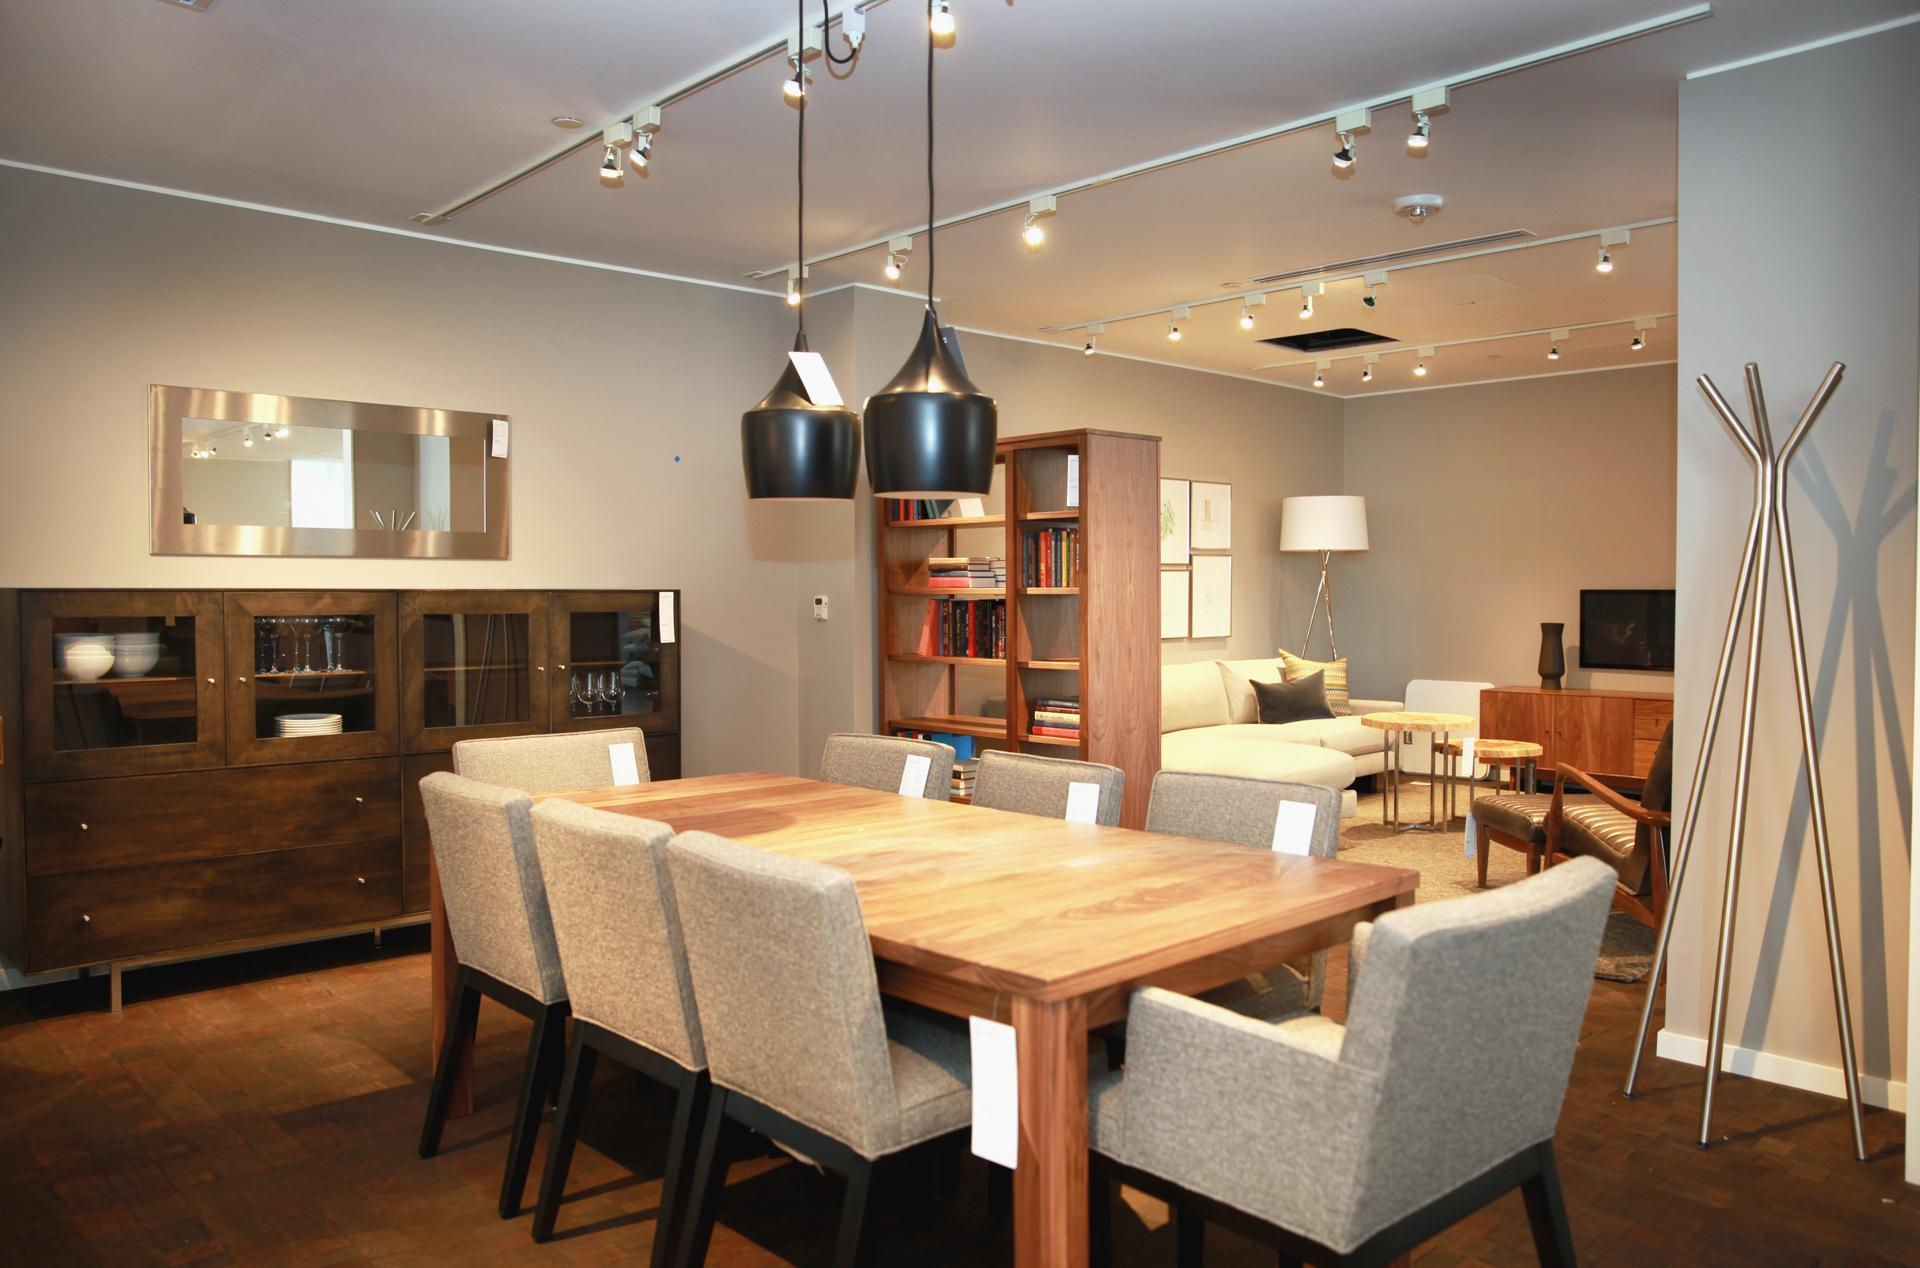 Room And Board Dining Room Chairs Room Amp Board Set To Open 39000 Sq Foot Showroom On Newbury The